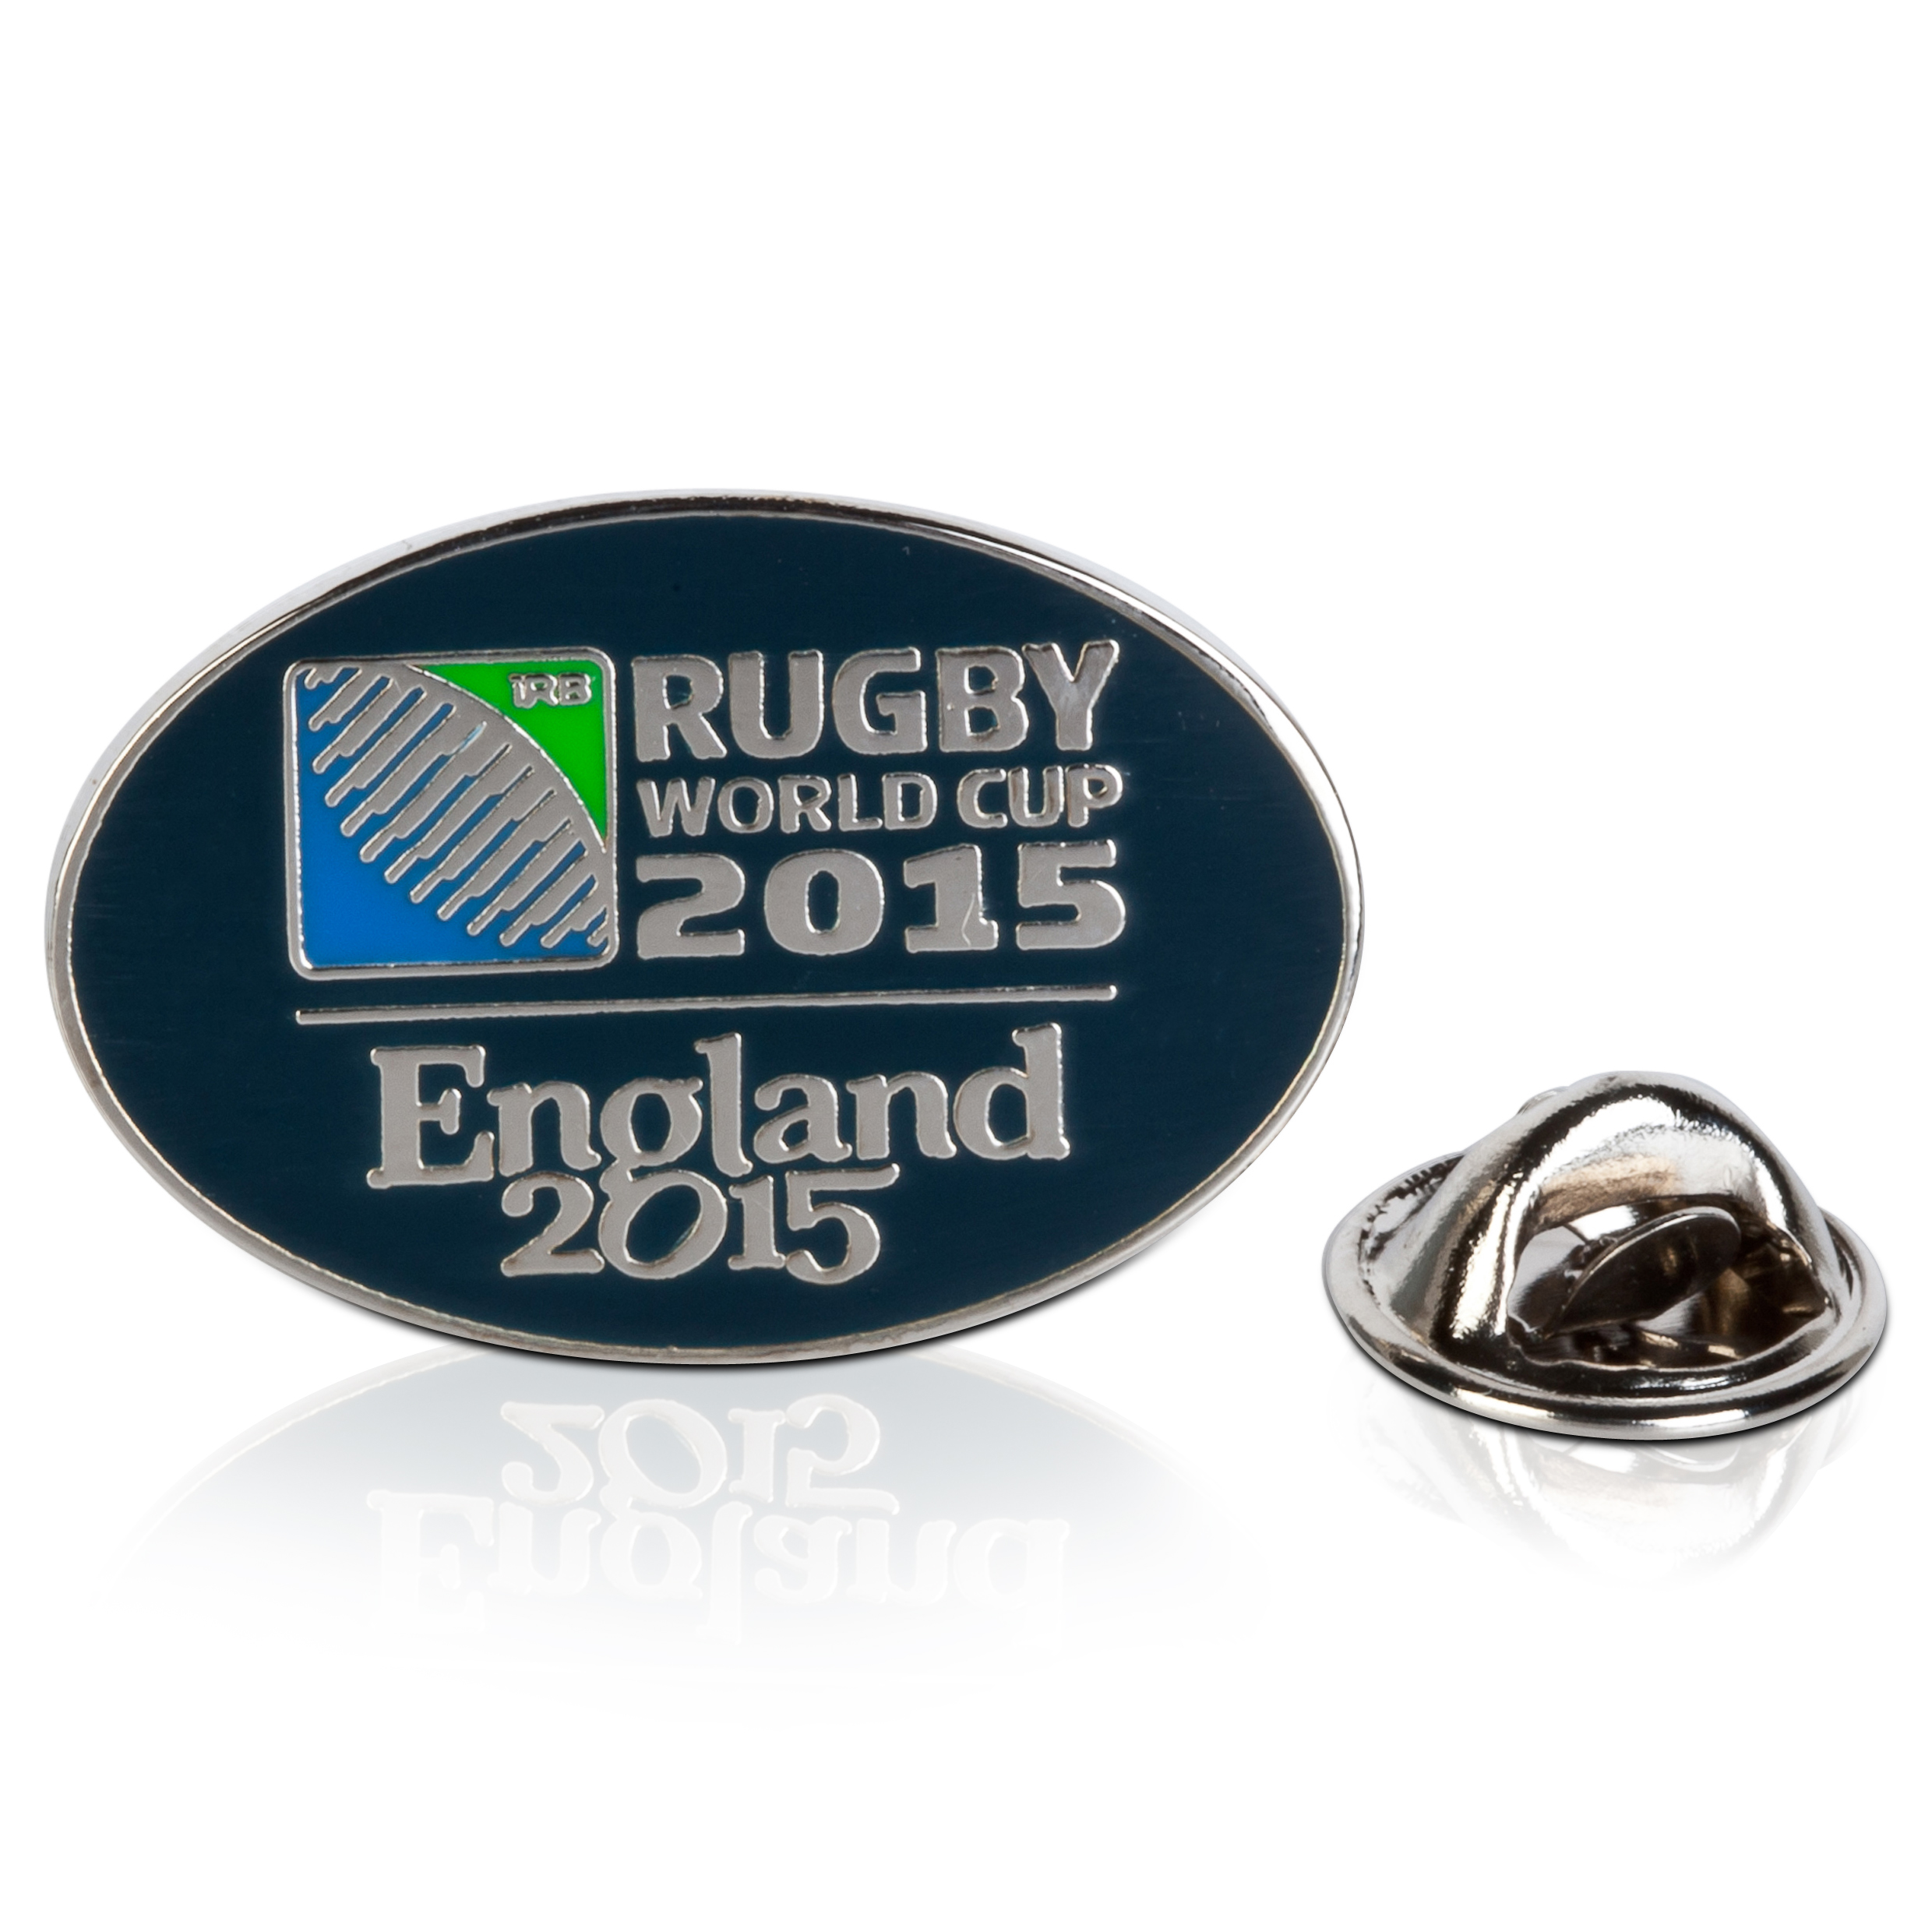 England World Cup 2015 Oval Logo Pin